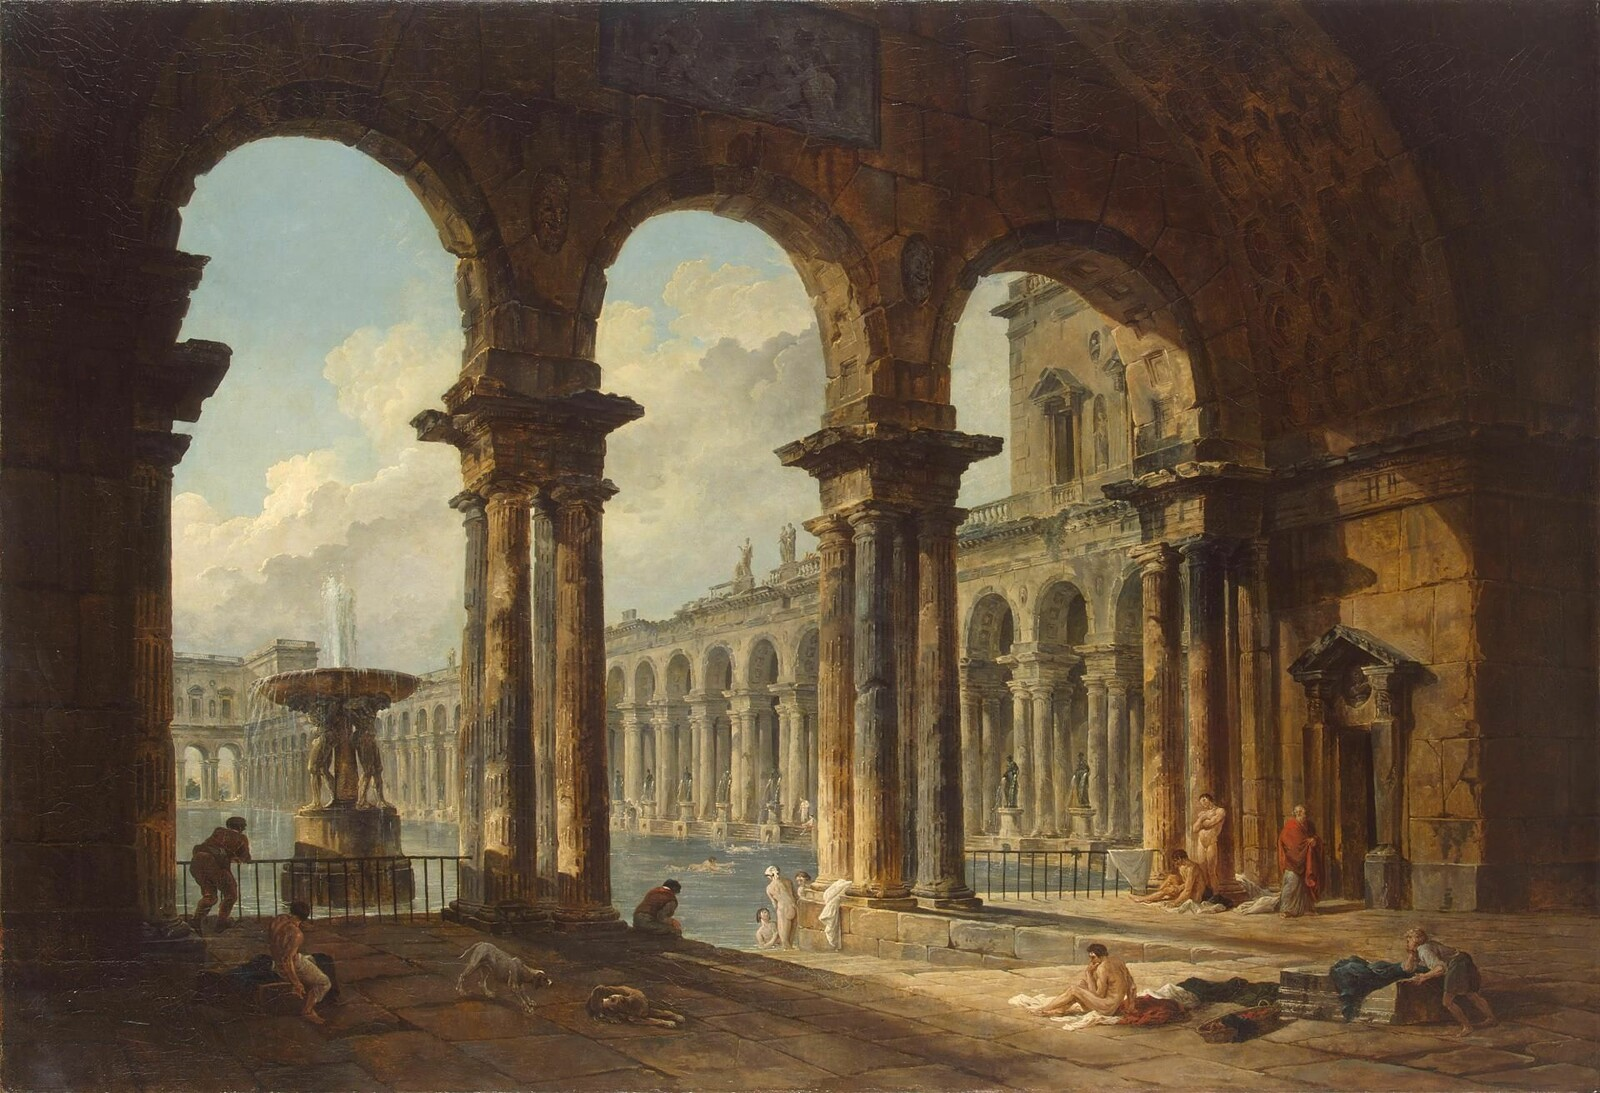 The scene is based on this painting by Hubert Robert.